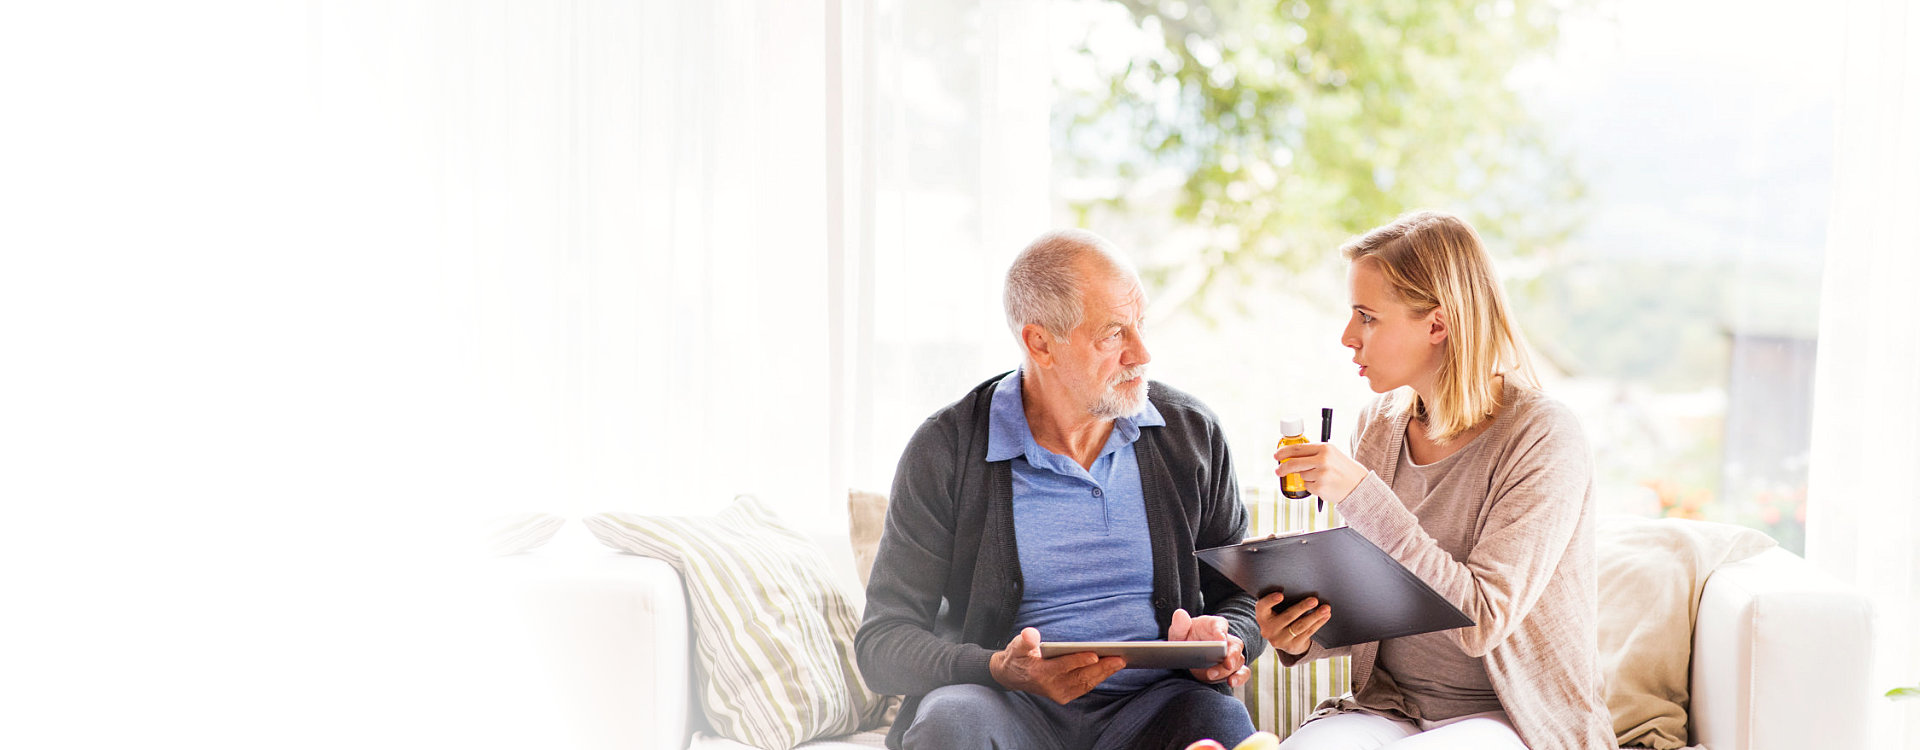 caregiver having a discussion with her senior patient